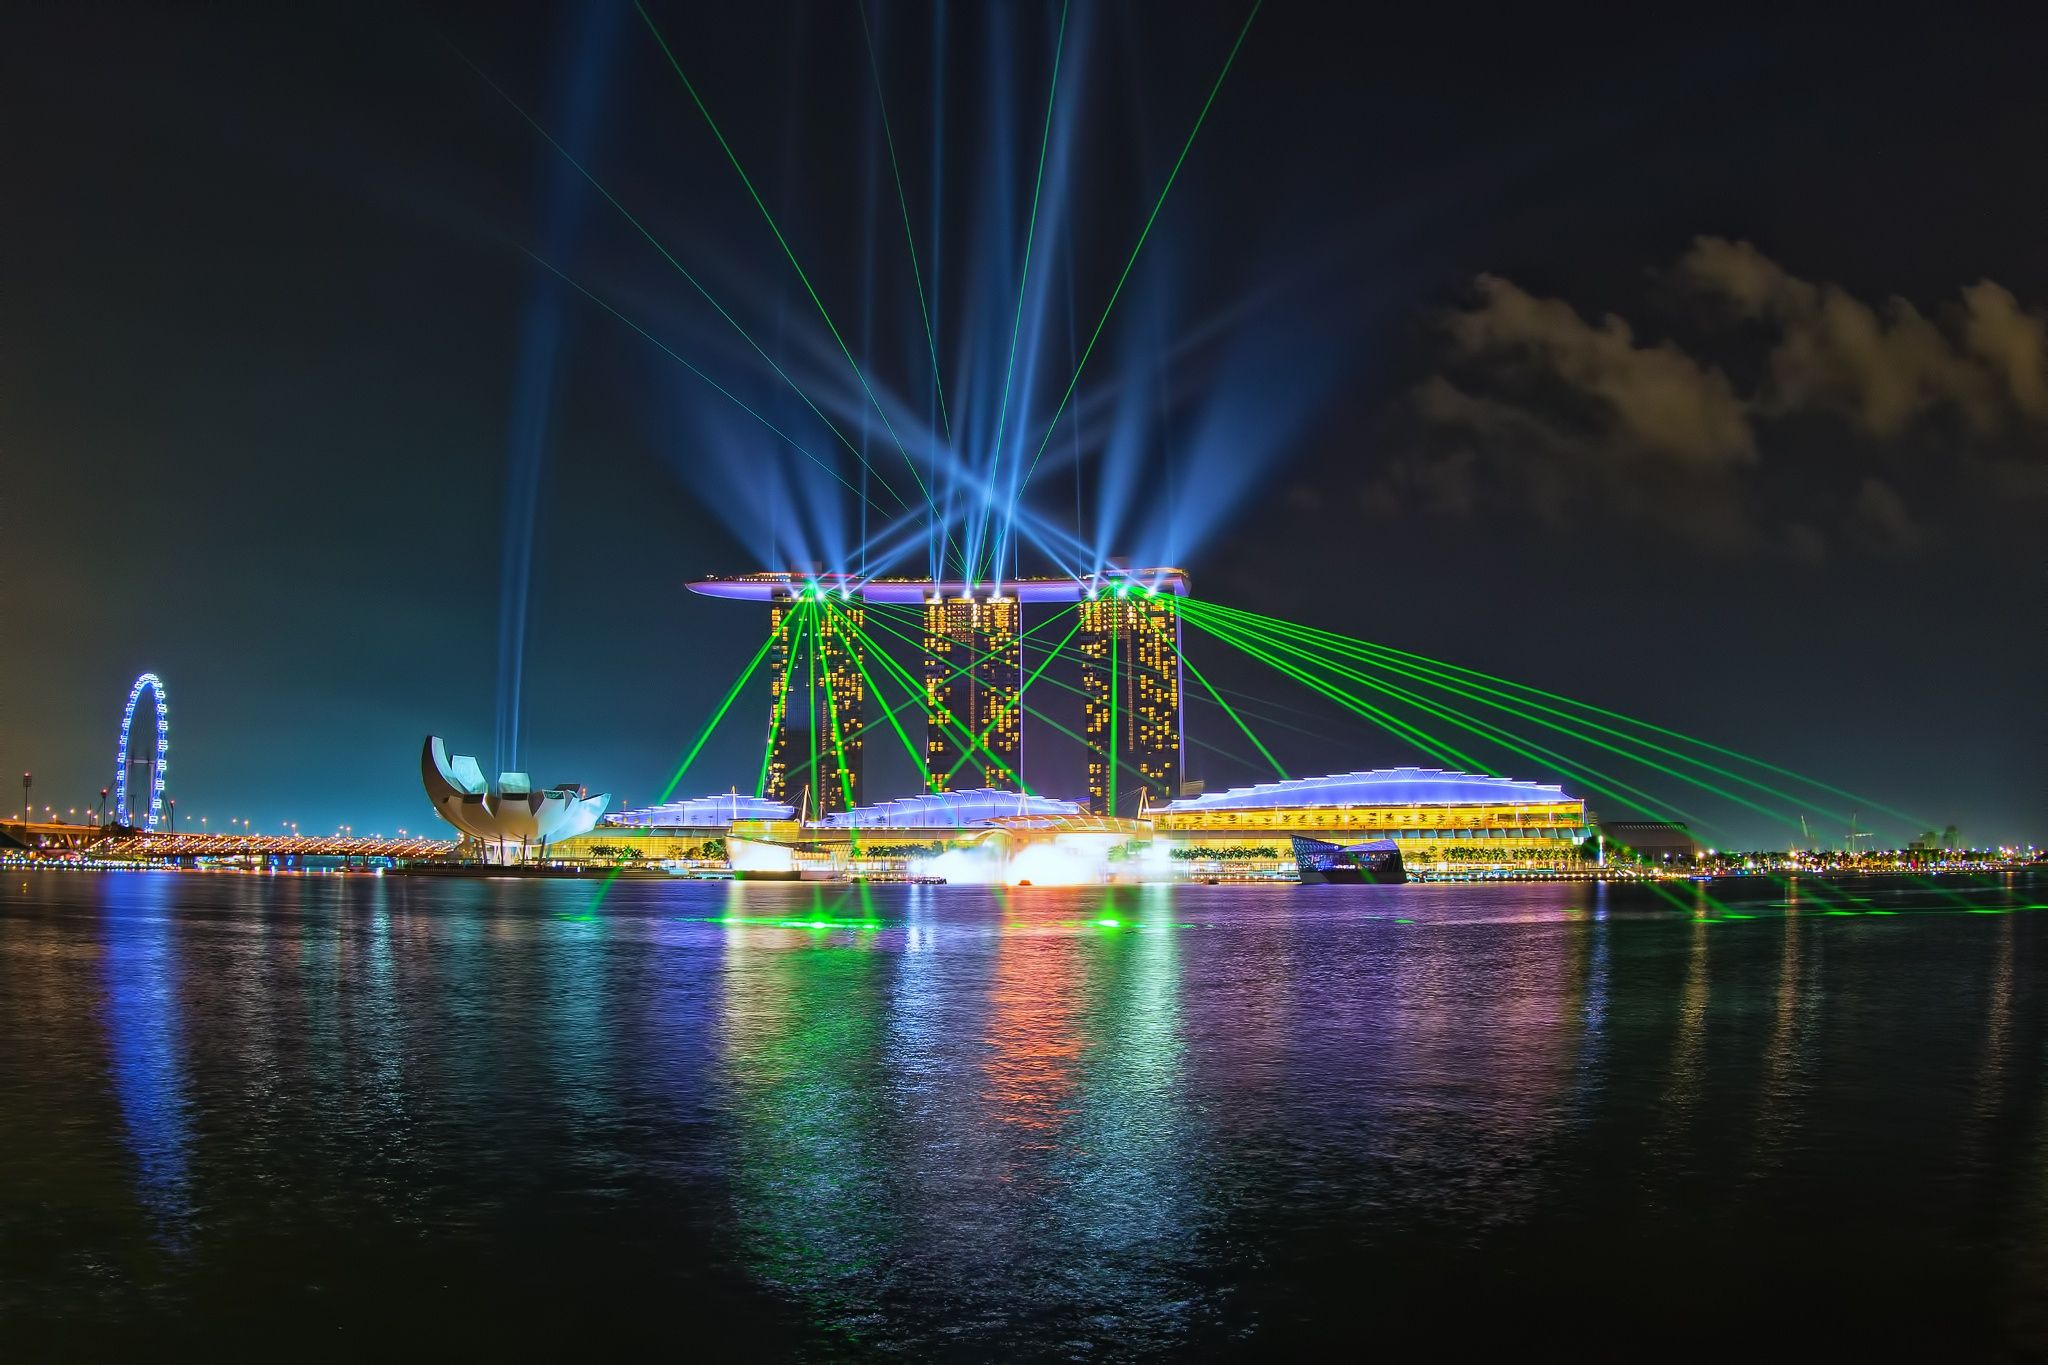 show time laser show at marina bay sand singapore been there